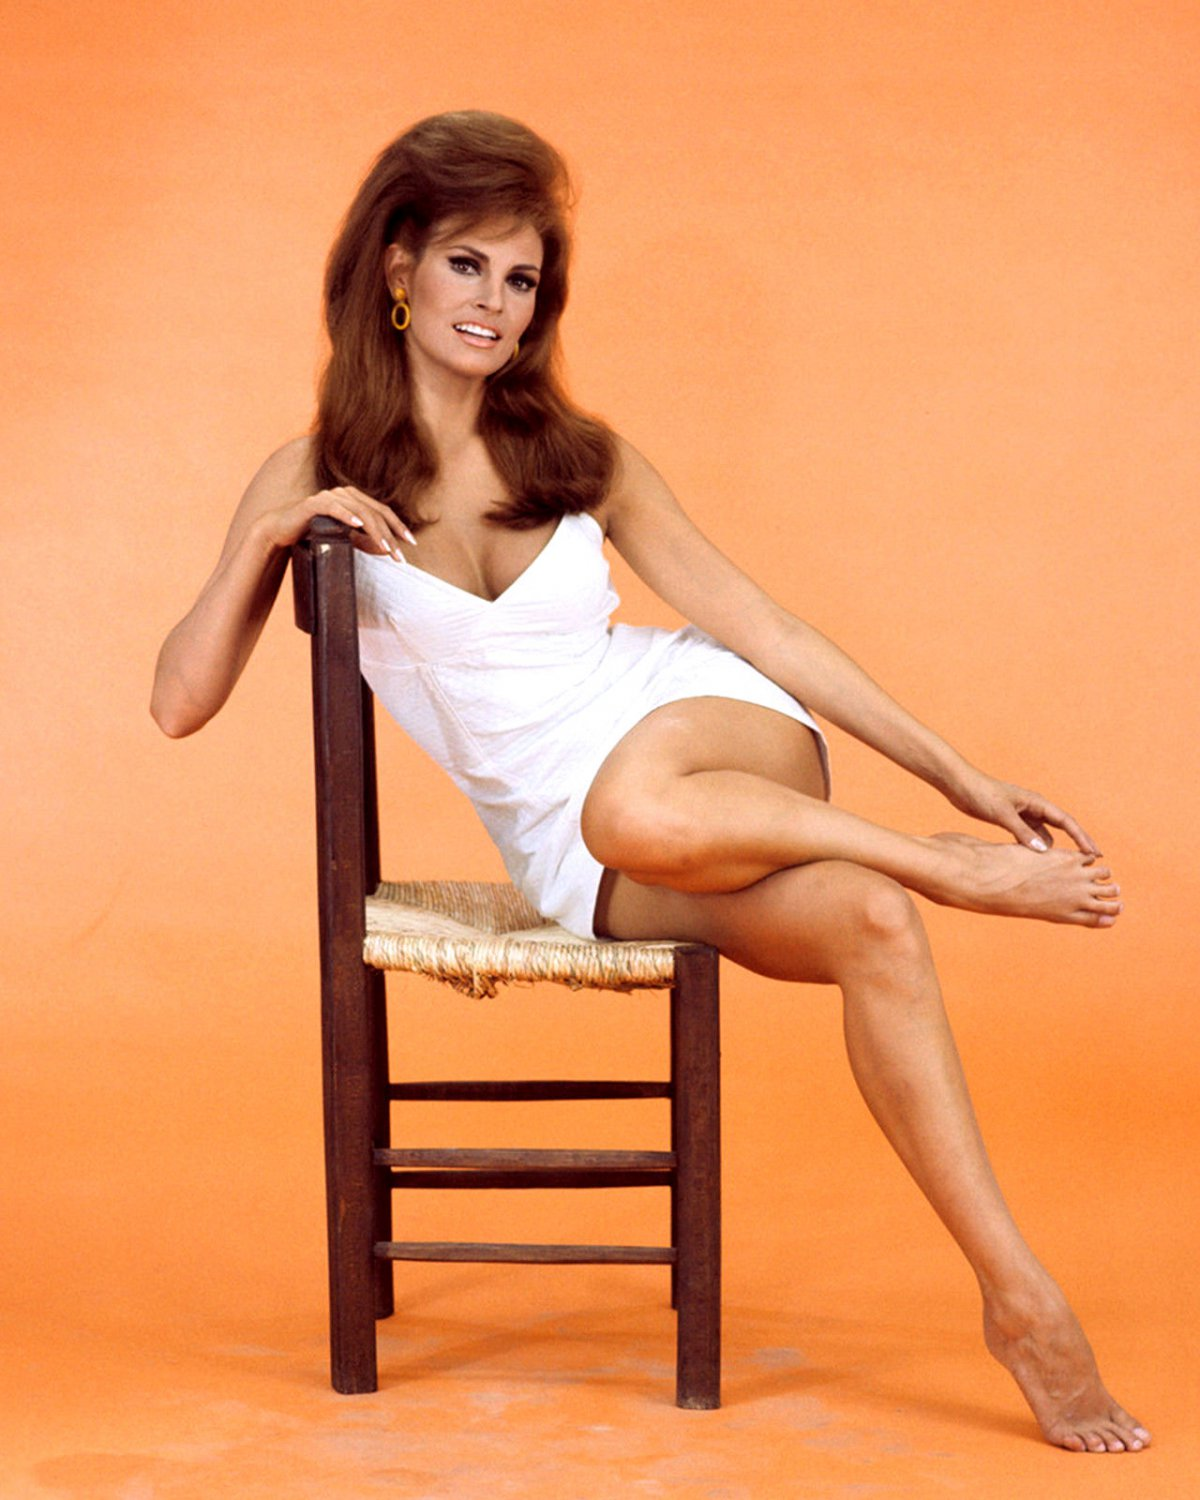 RAQUEL WELCH ACTRESS AND SEX-SYMBOL - 8X10 PUBLICITY PHOTO (SP-016)